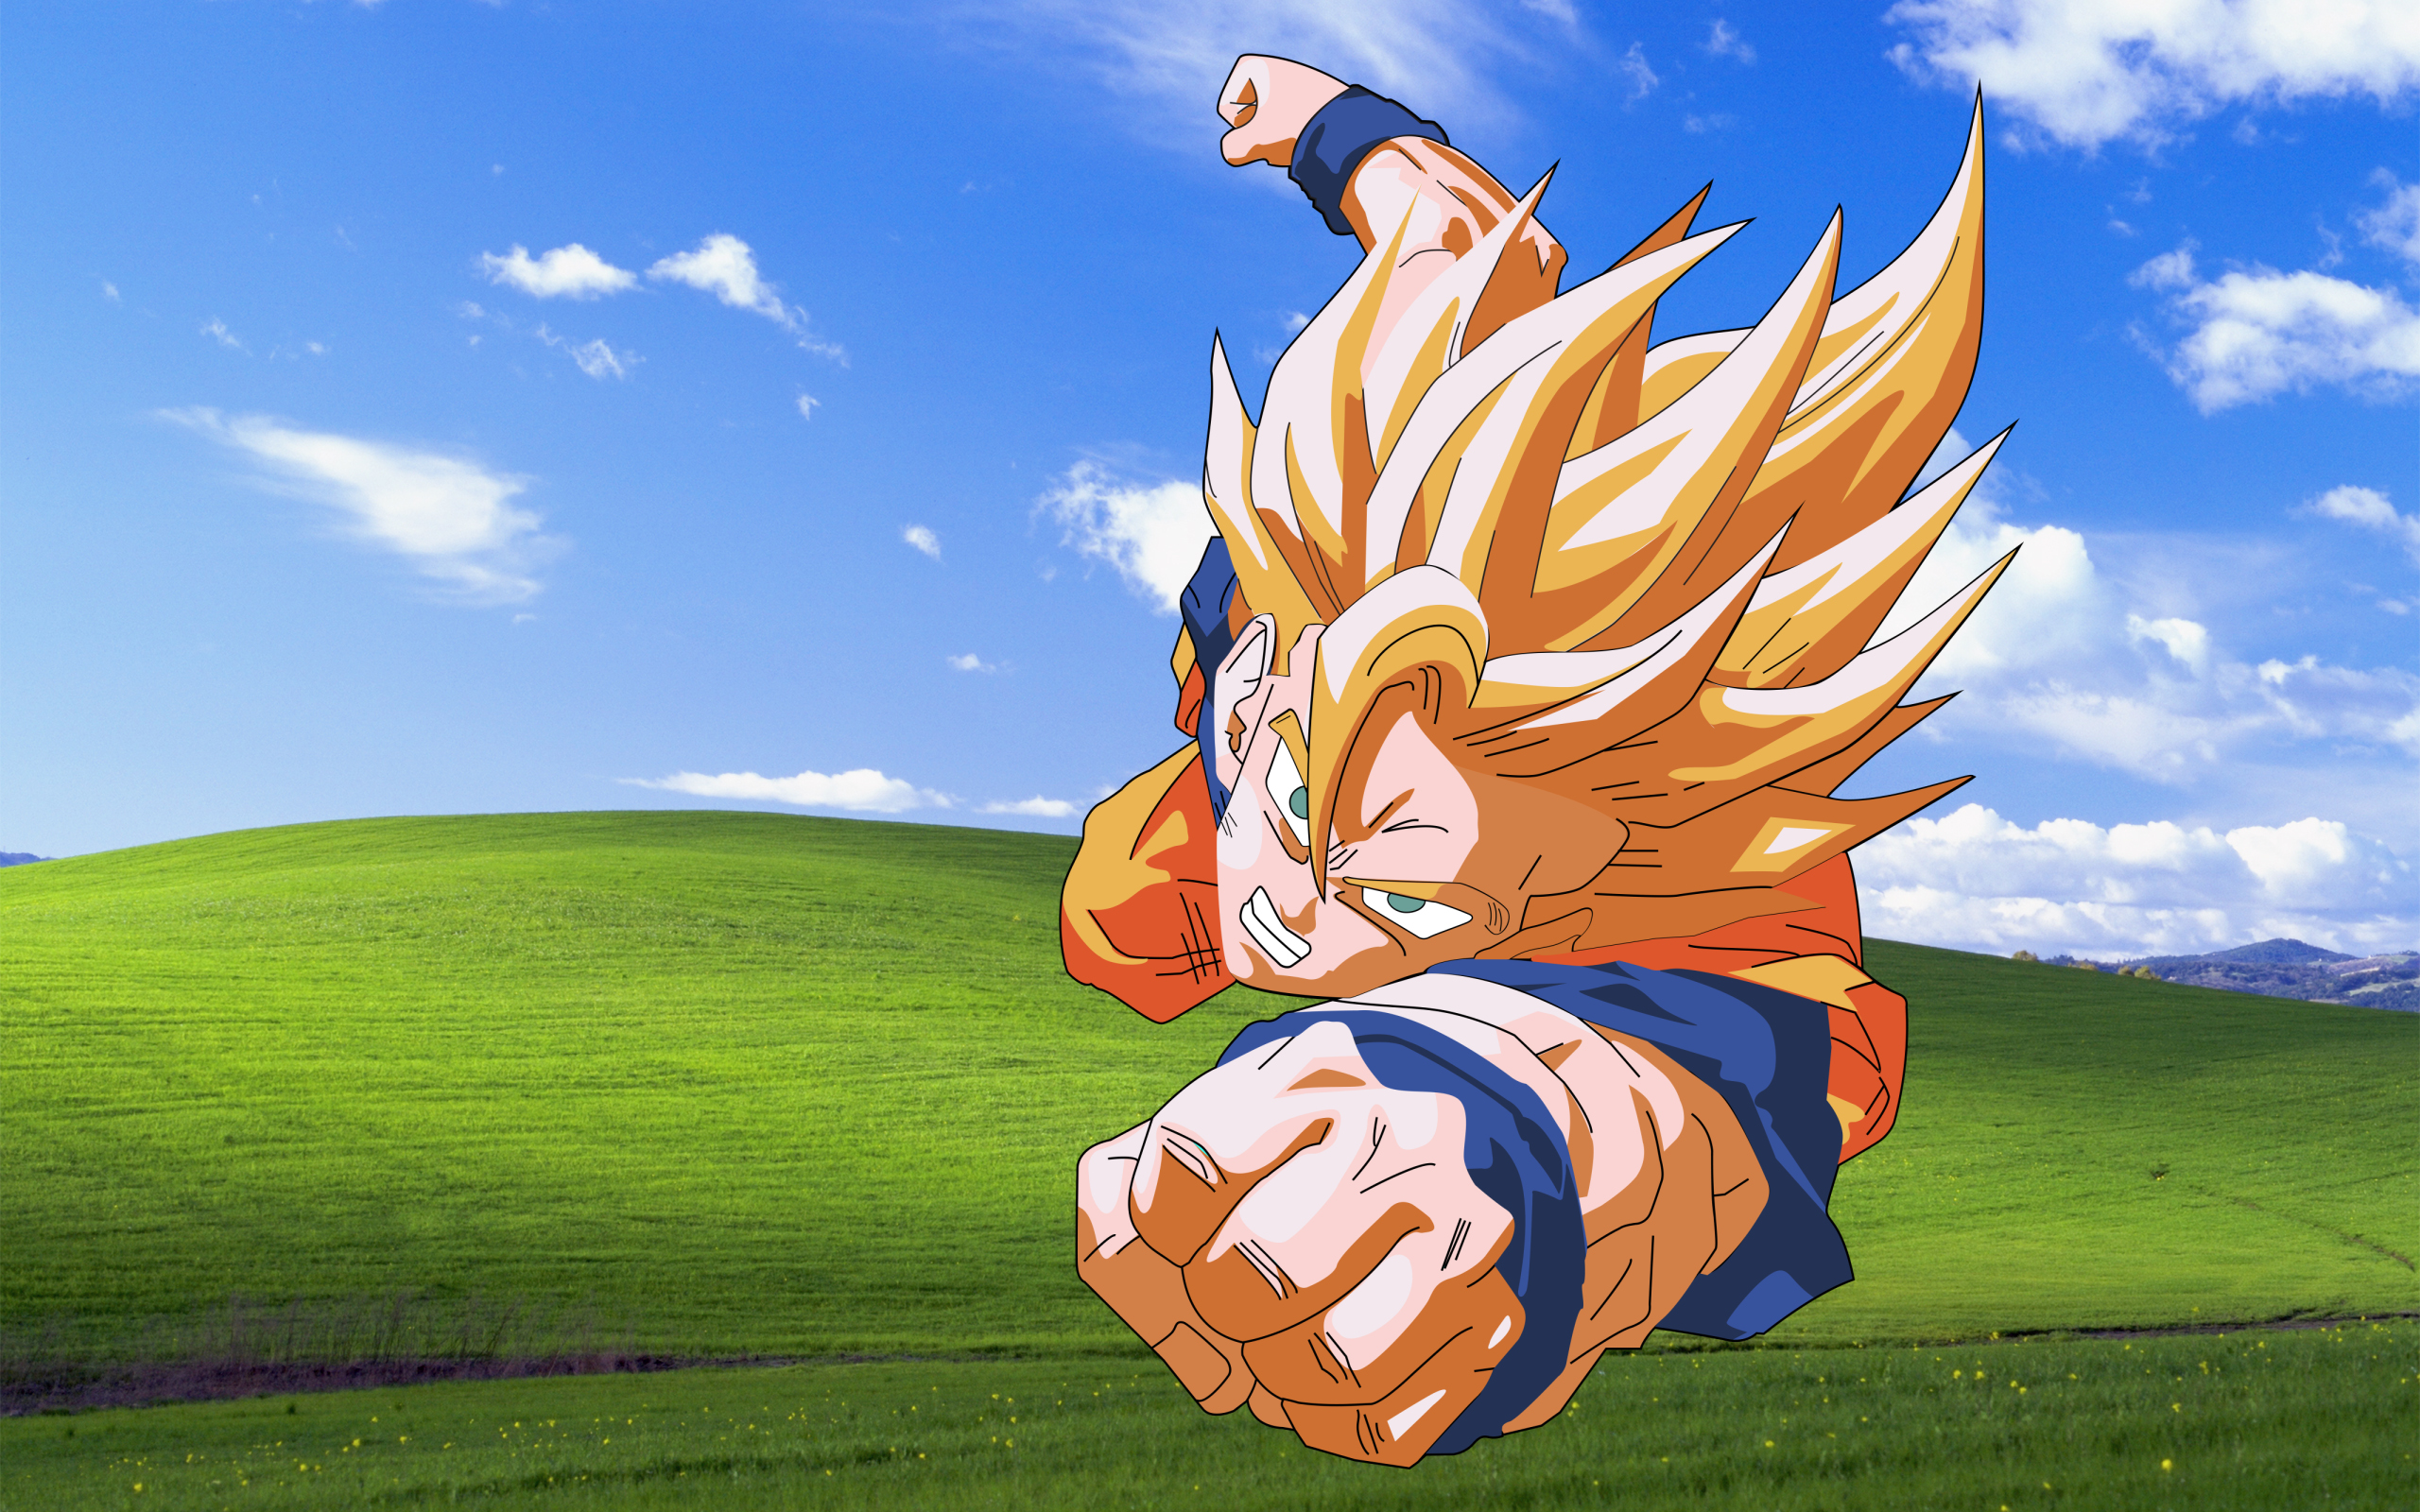 Dragon Ball Z Goku Windows 7 Wallpaper 5082 Frenziacom 2560x1600